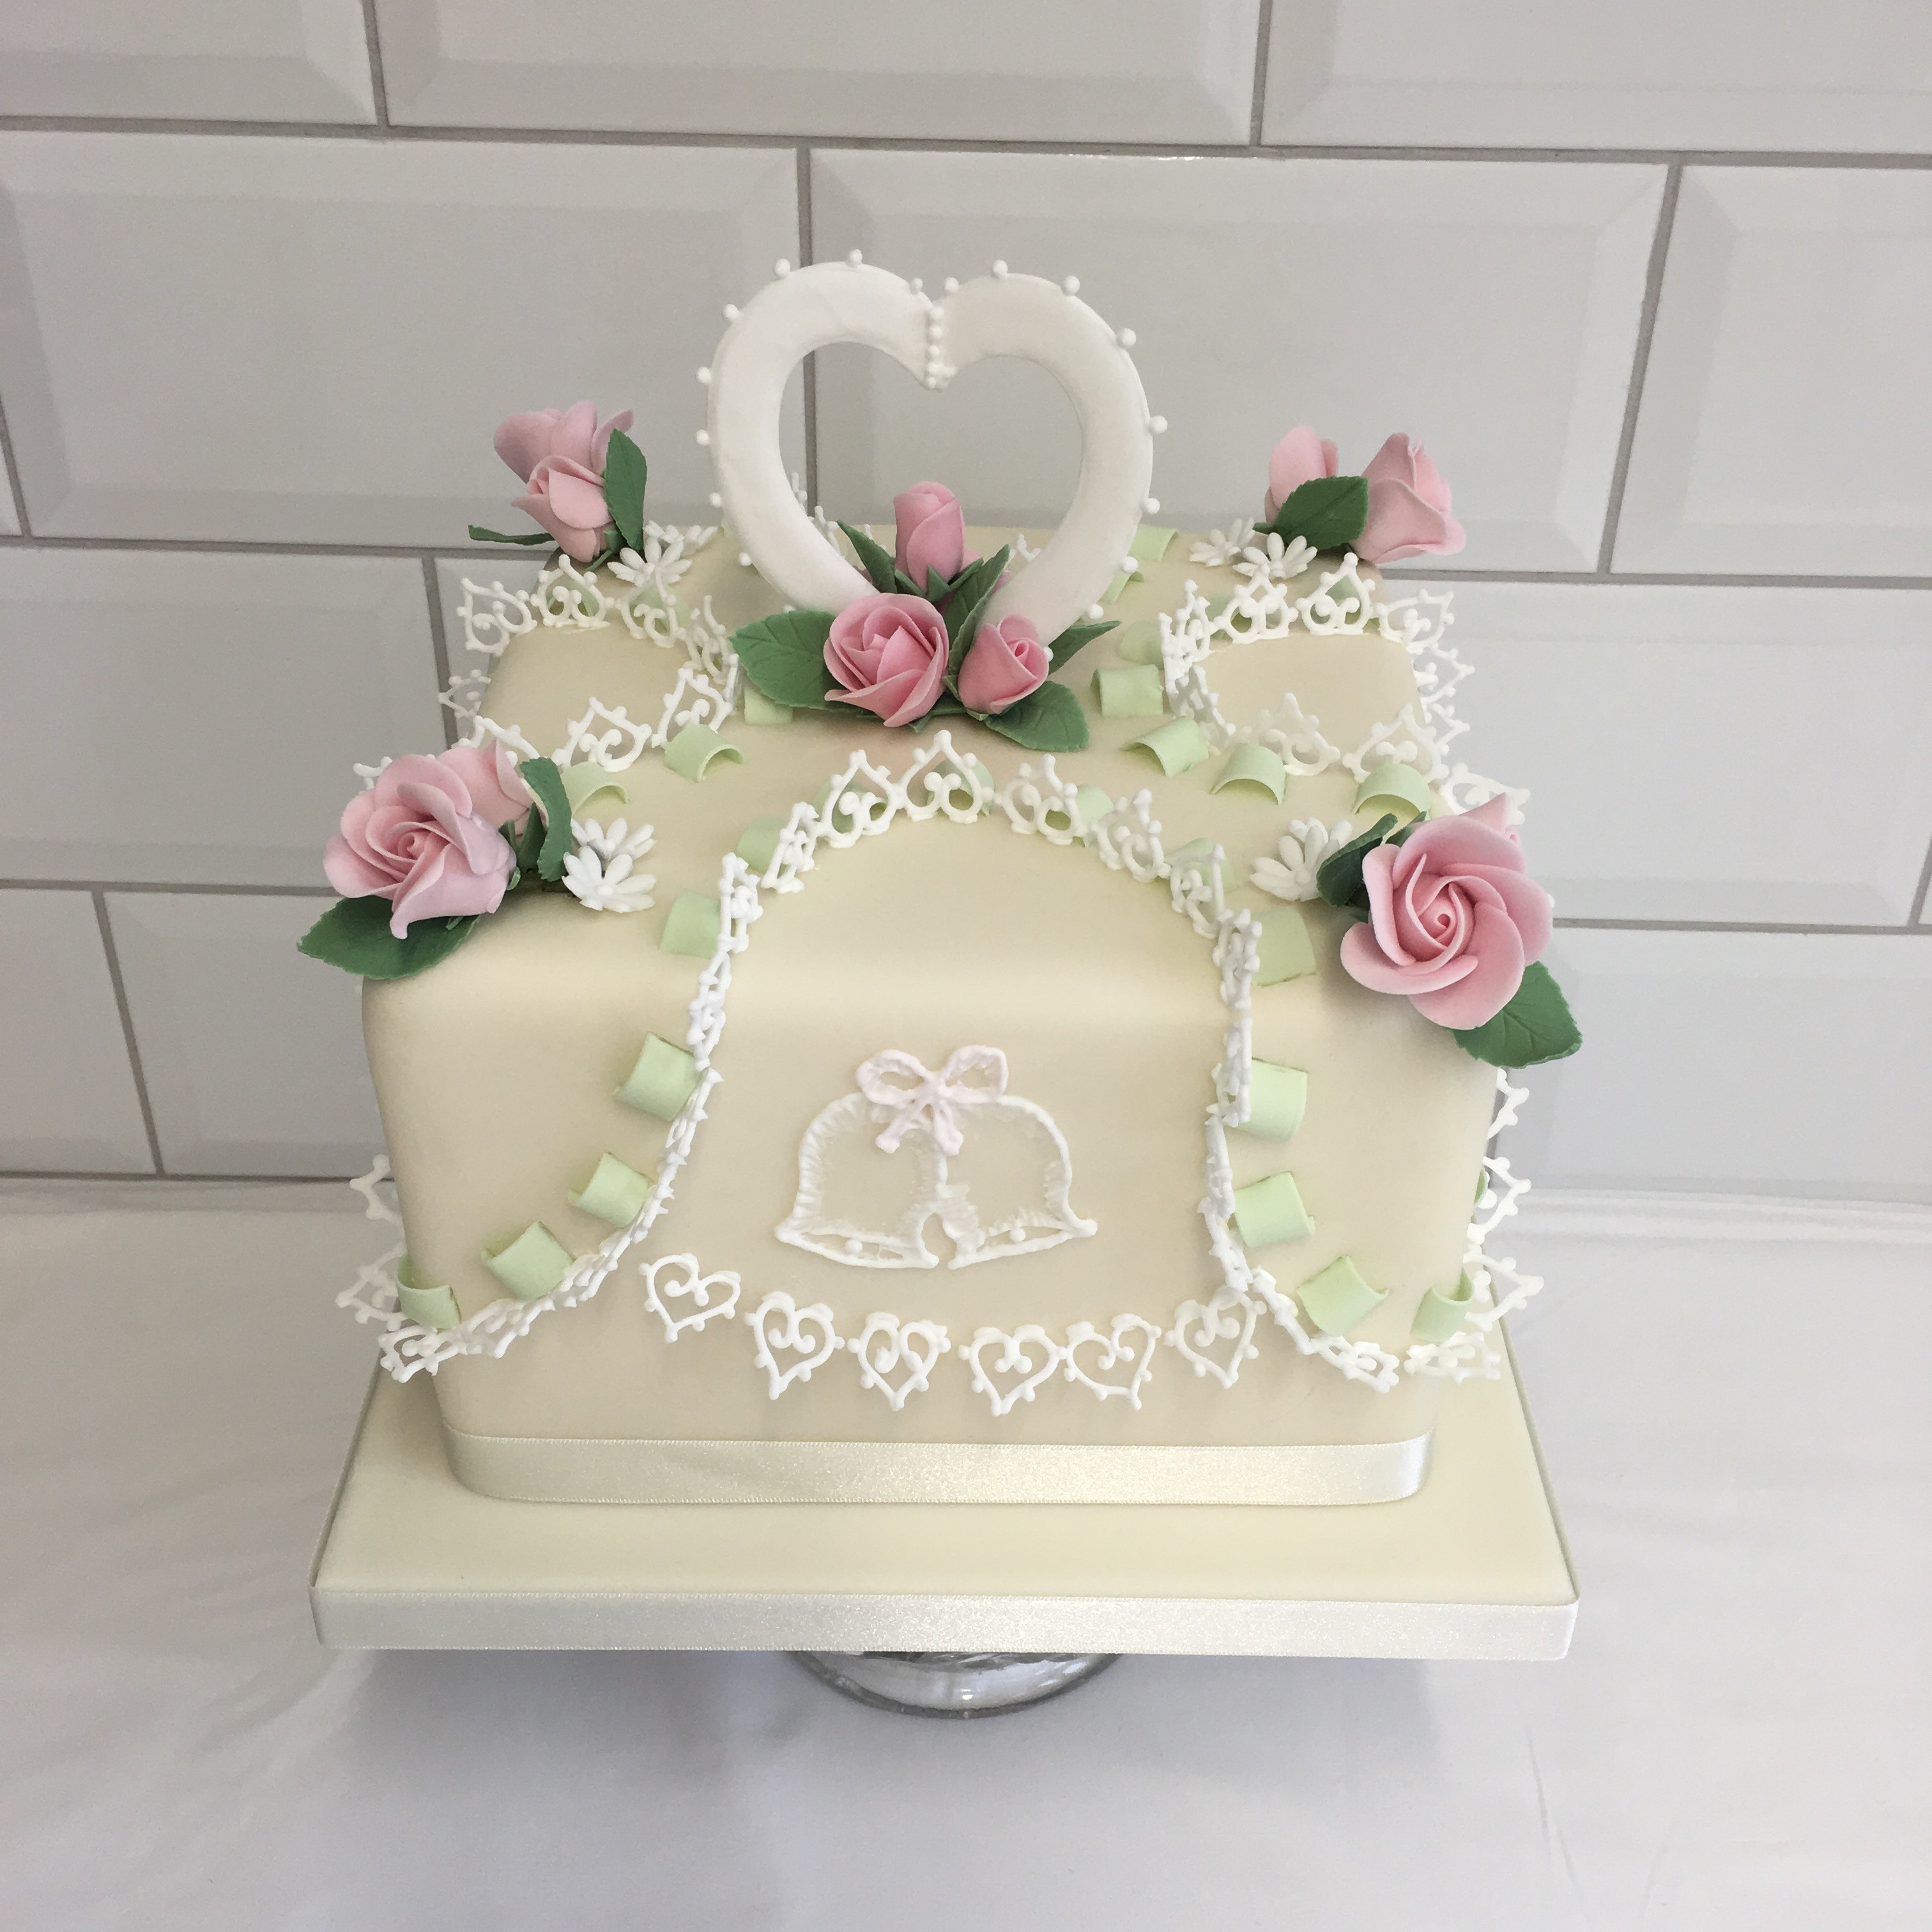 25th Wedding Anniversary Cakes: Traditional Techniques For A 25th Wedding Anniversary Cake